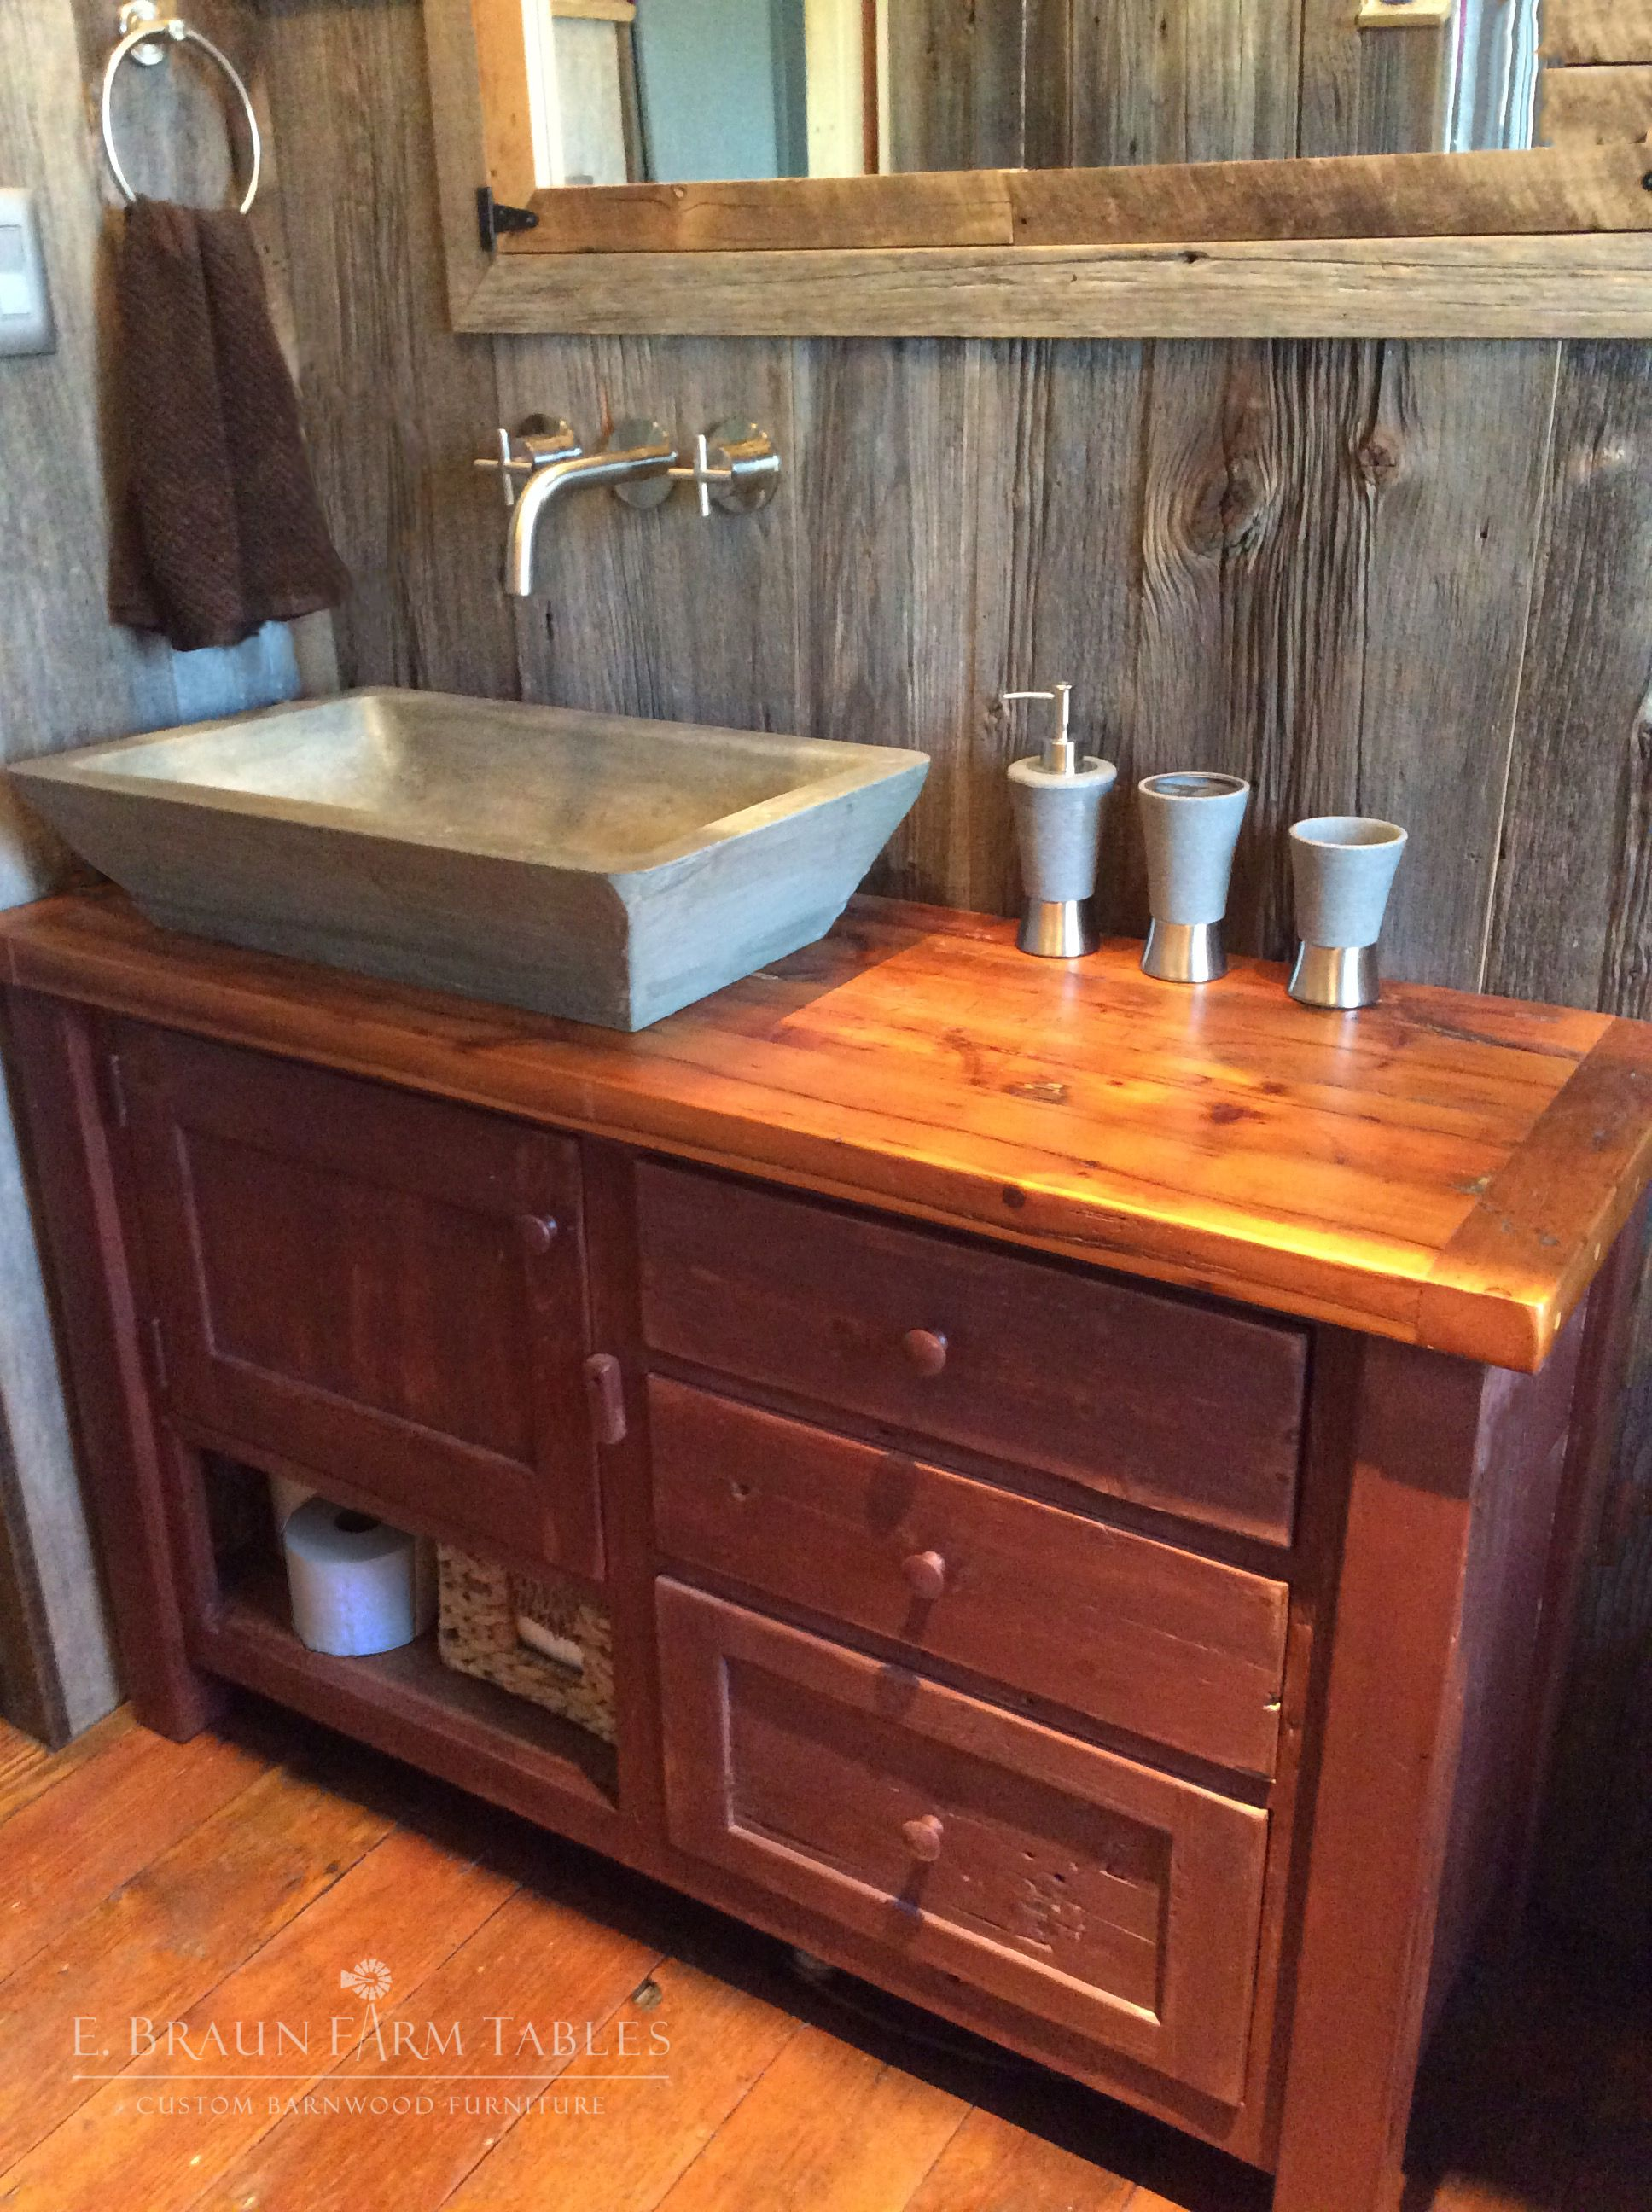 Vanity built using reclaimed barn wood from the 1800's to